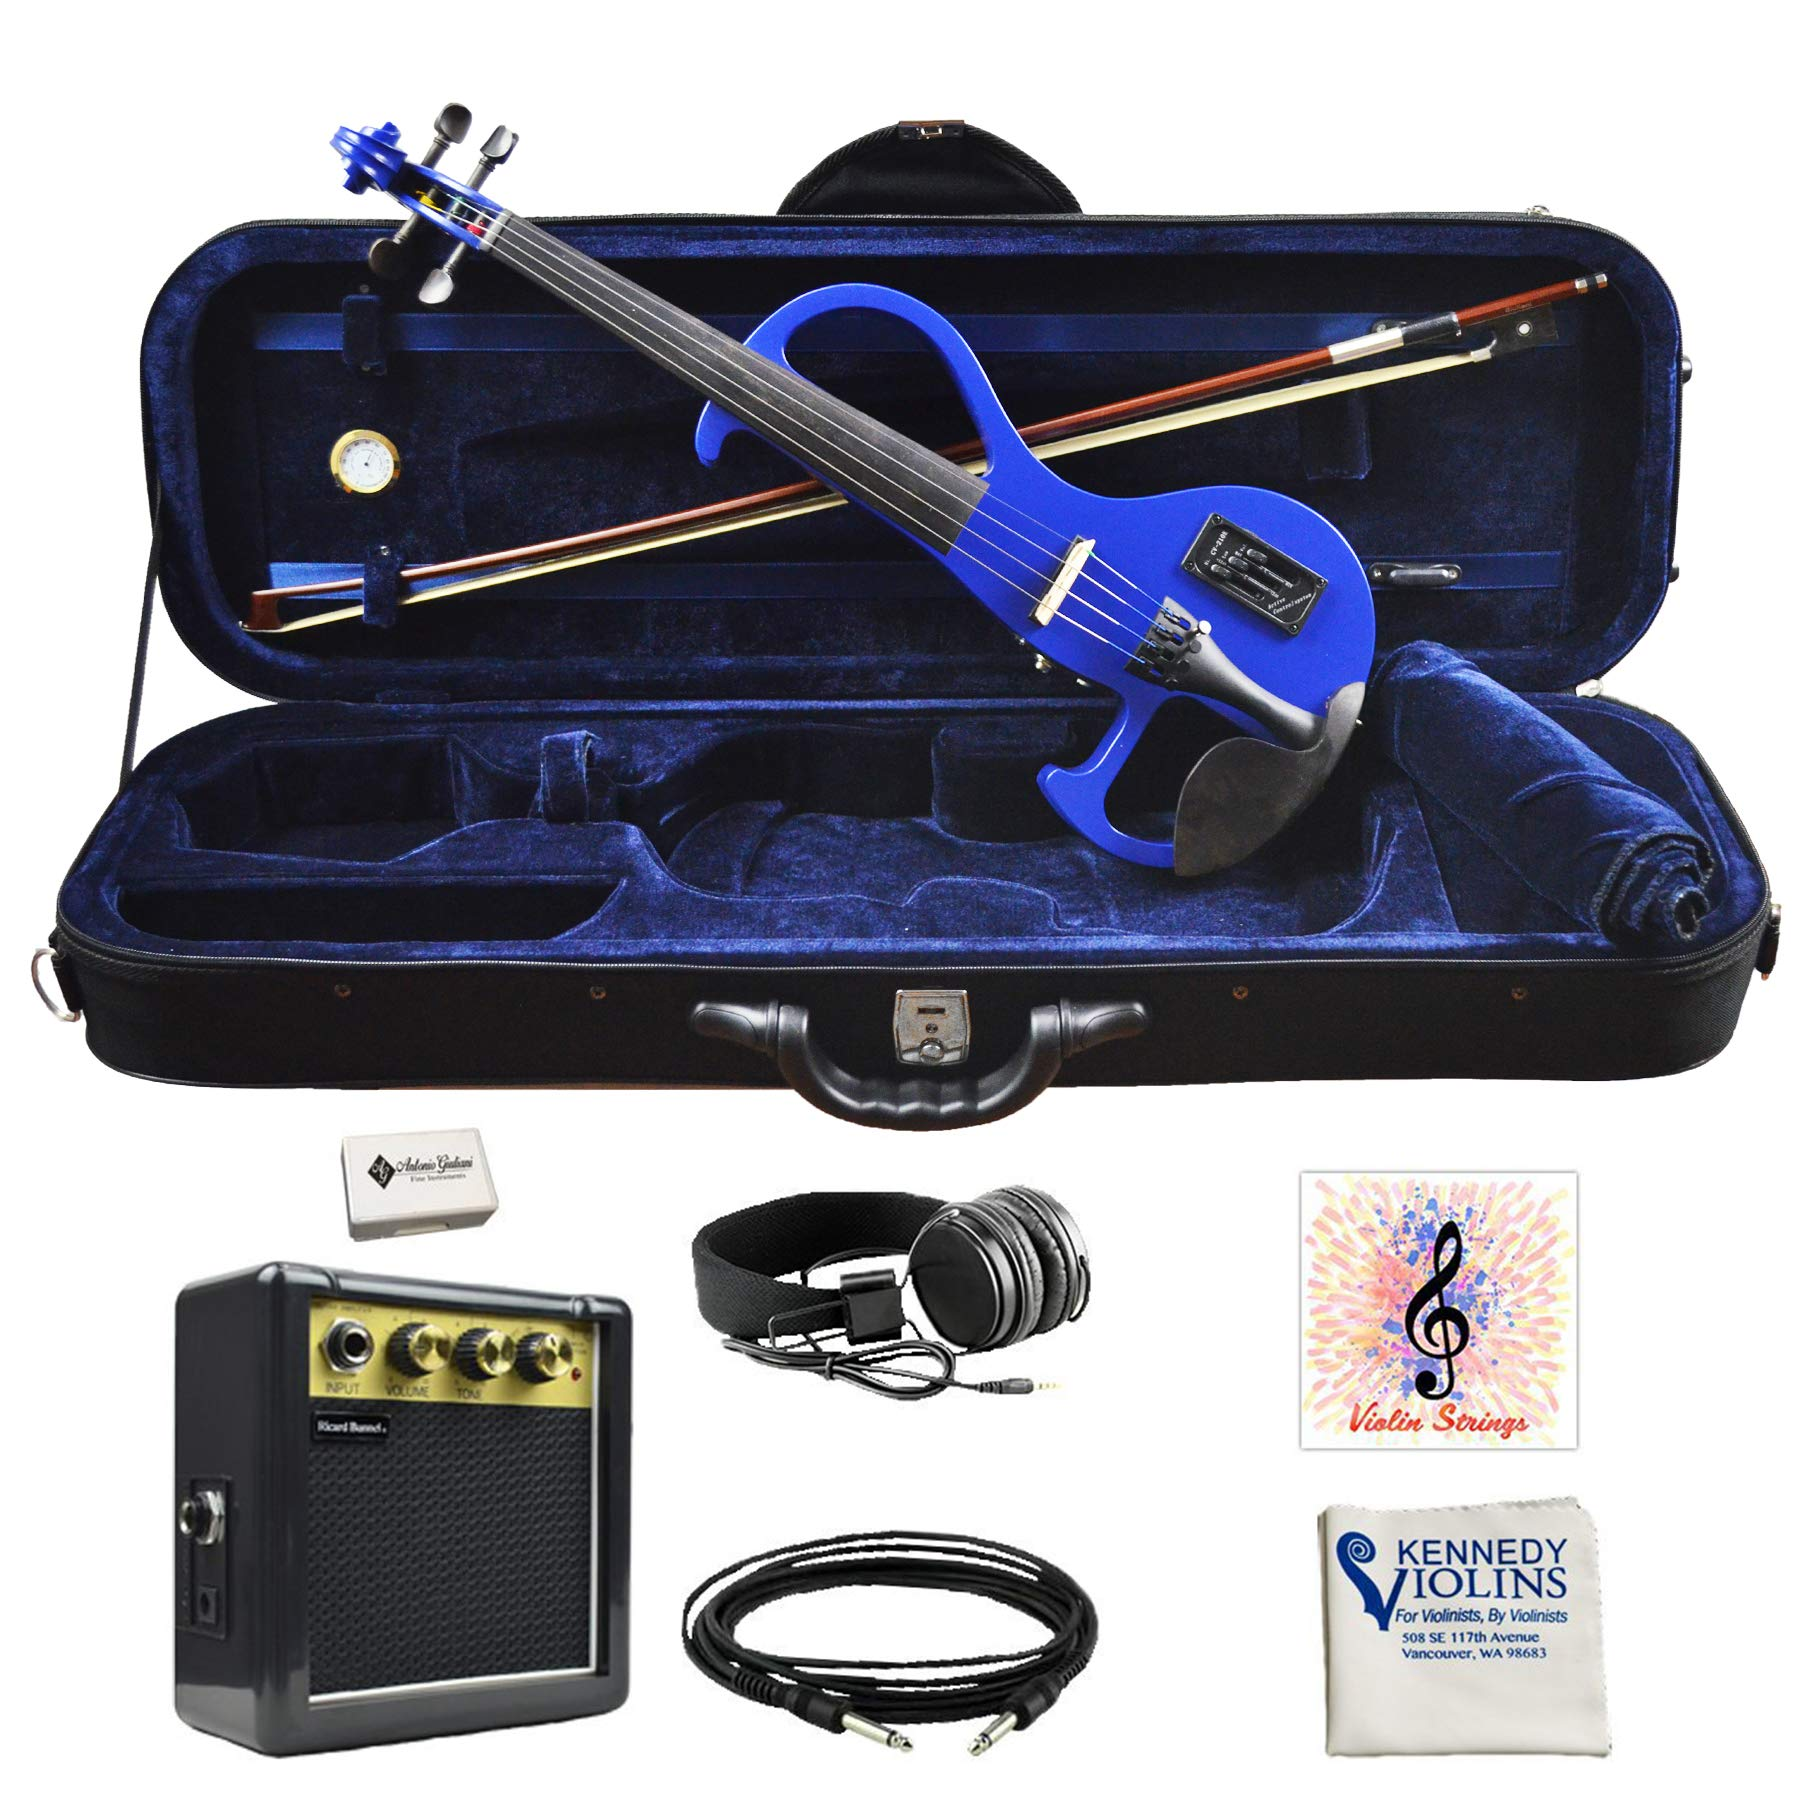 Bunnel EDGE Clearance Electric Violin Outfit Bombshell Blue Amp Included BE300 by Kennedy Violins